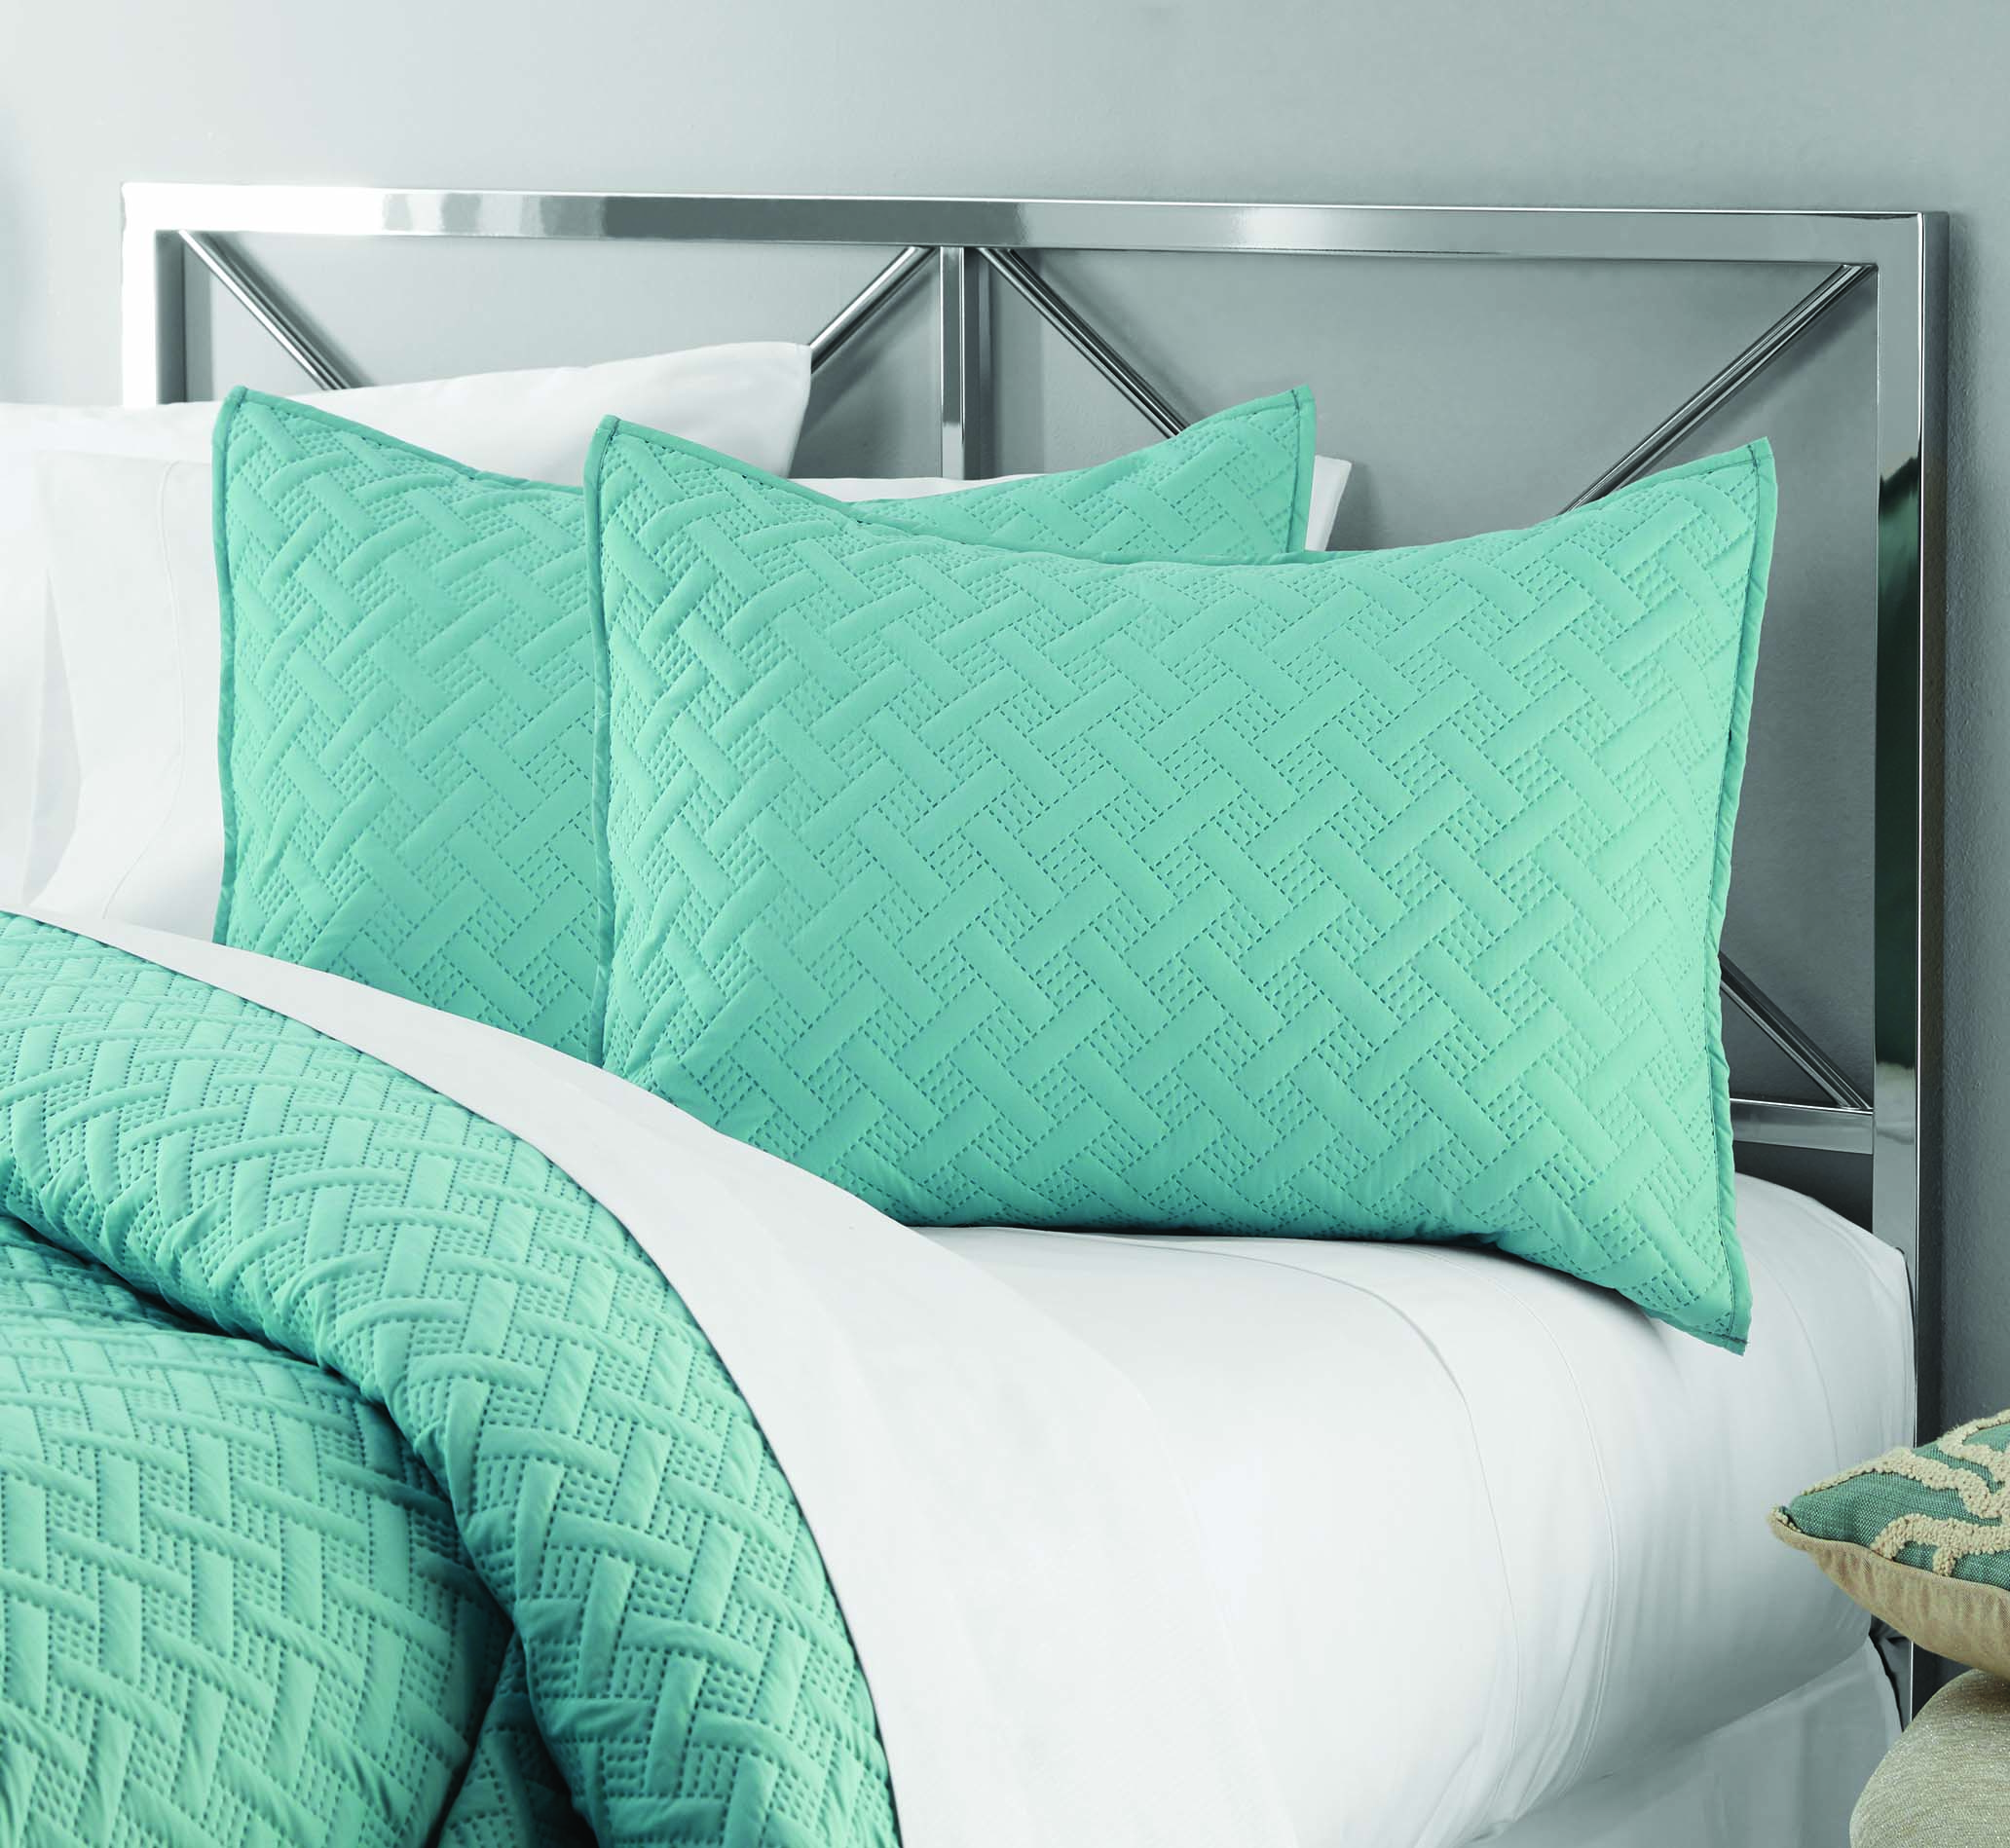 Mainstays Emma Solid Basket-Weave Quilt, Shams Sold Separately, Multiple Colors and Sizes Available